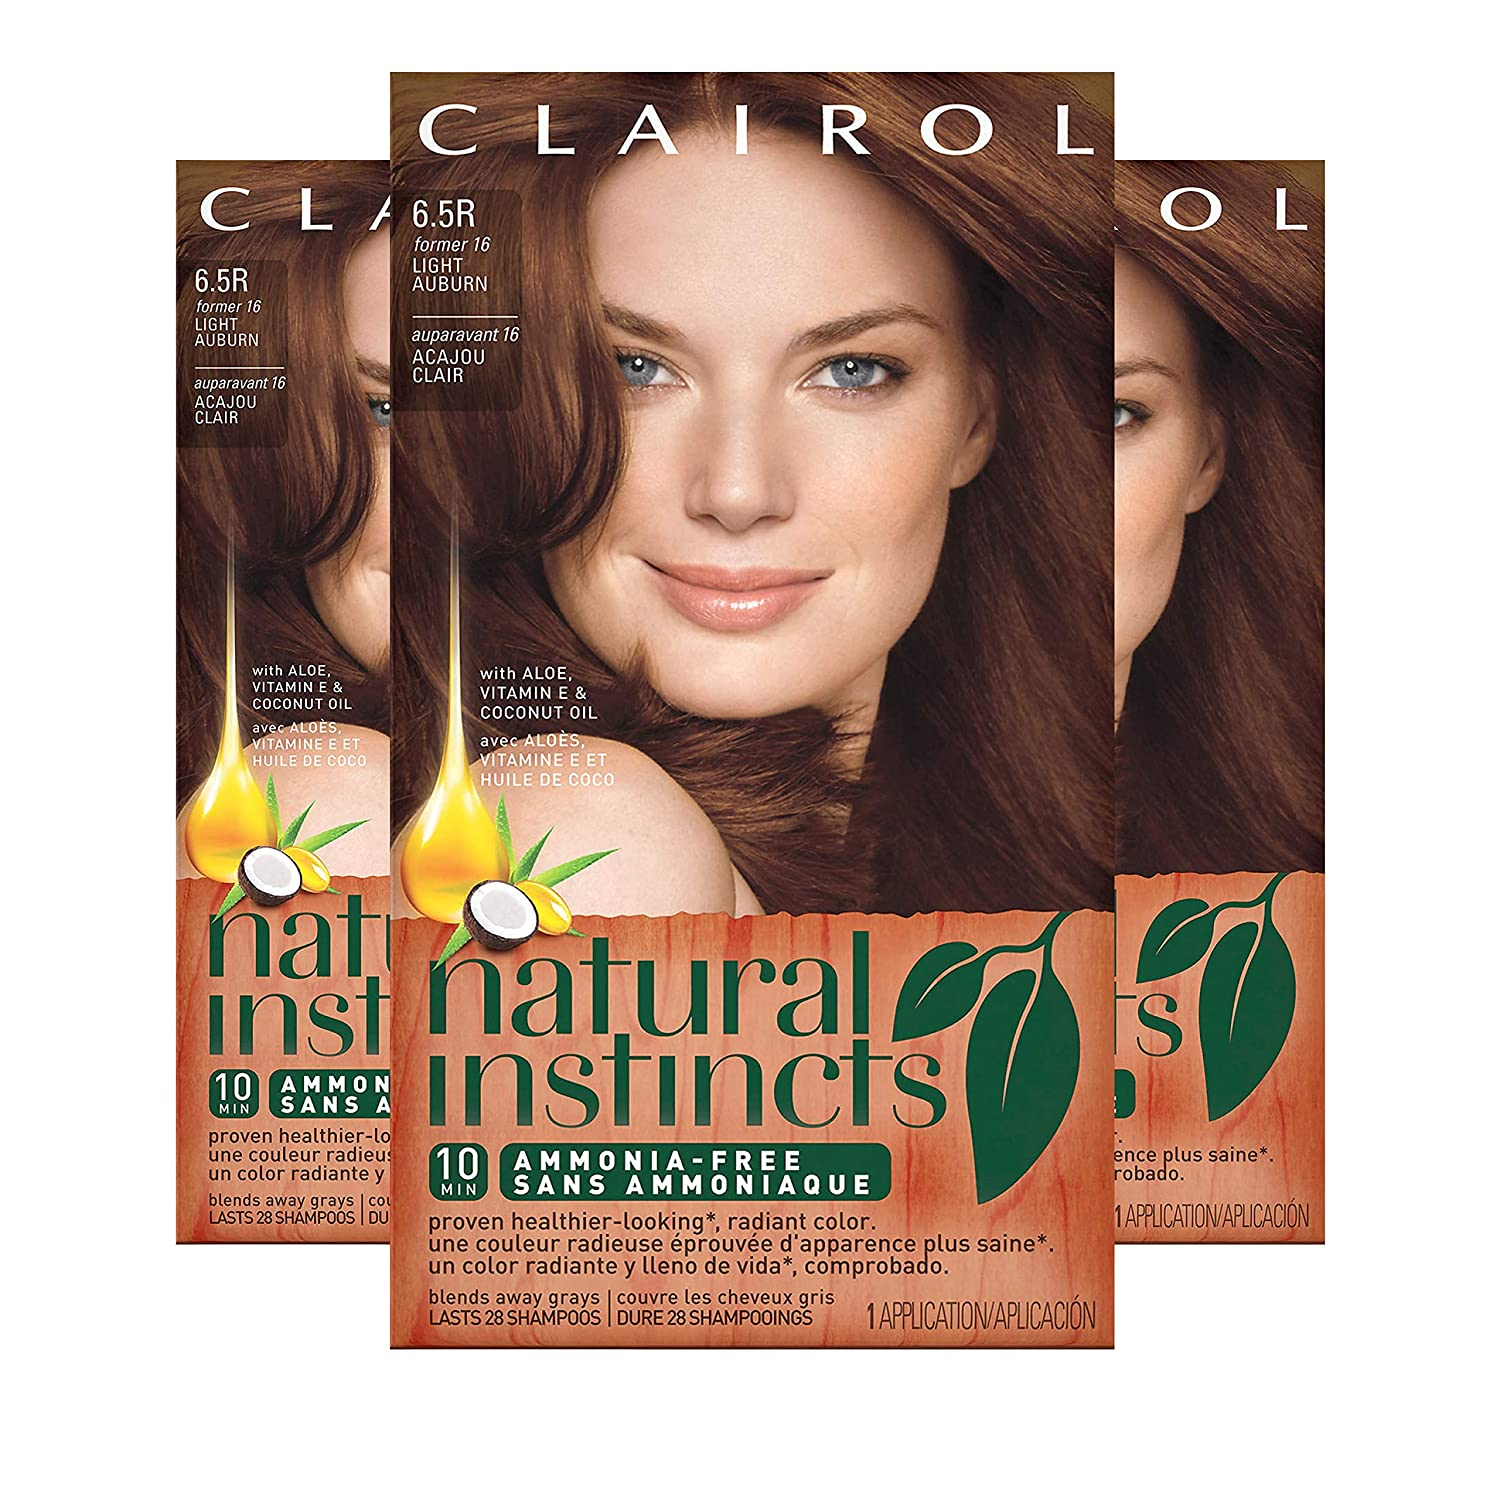 Clairol Natural Instincts Hair Color 16 Spiced Tea Light Auburn, Semi-permanent Hair Color, 3 Count (Packaging May Vary)